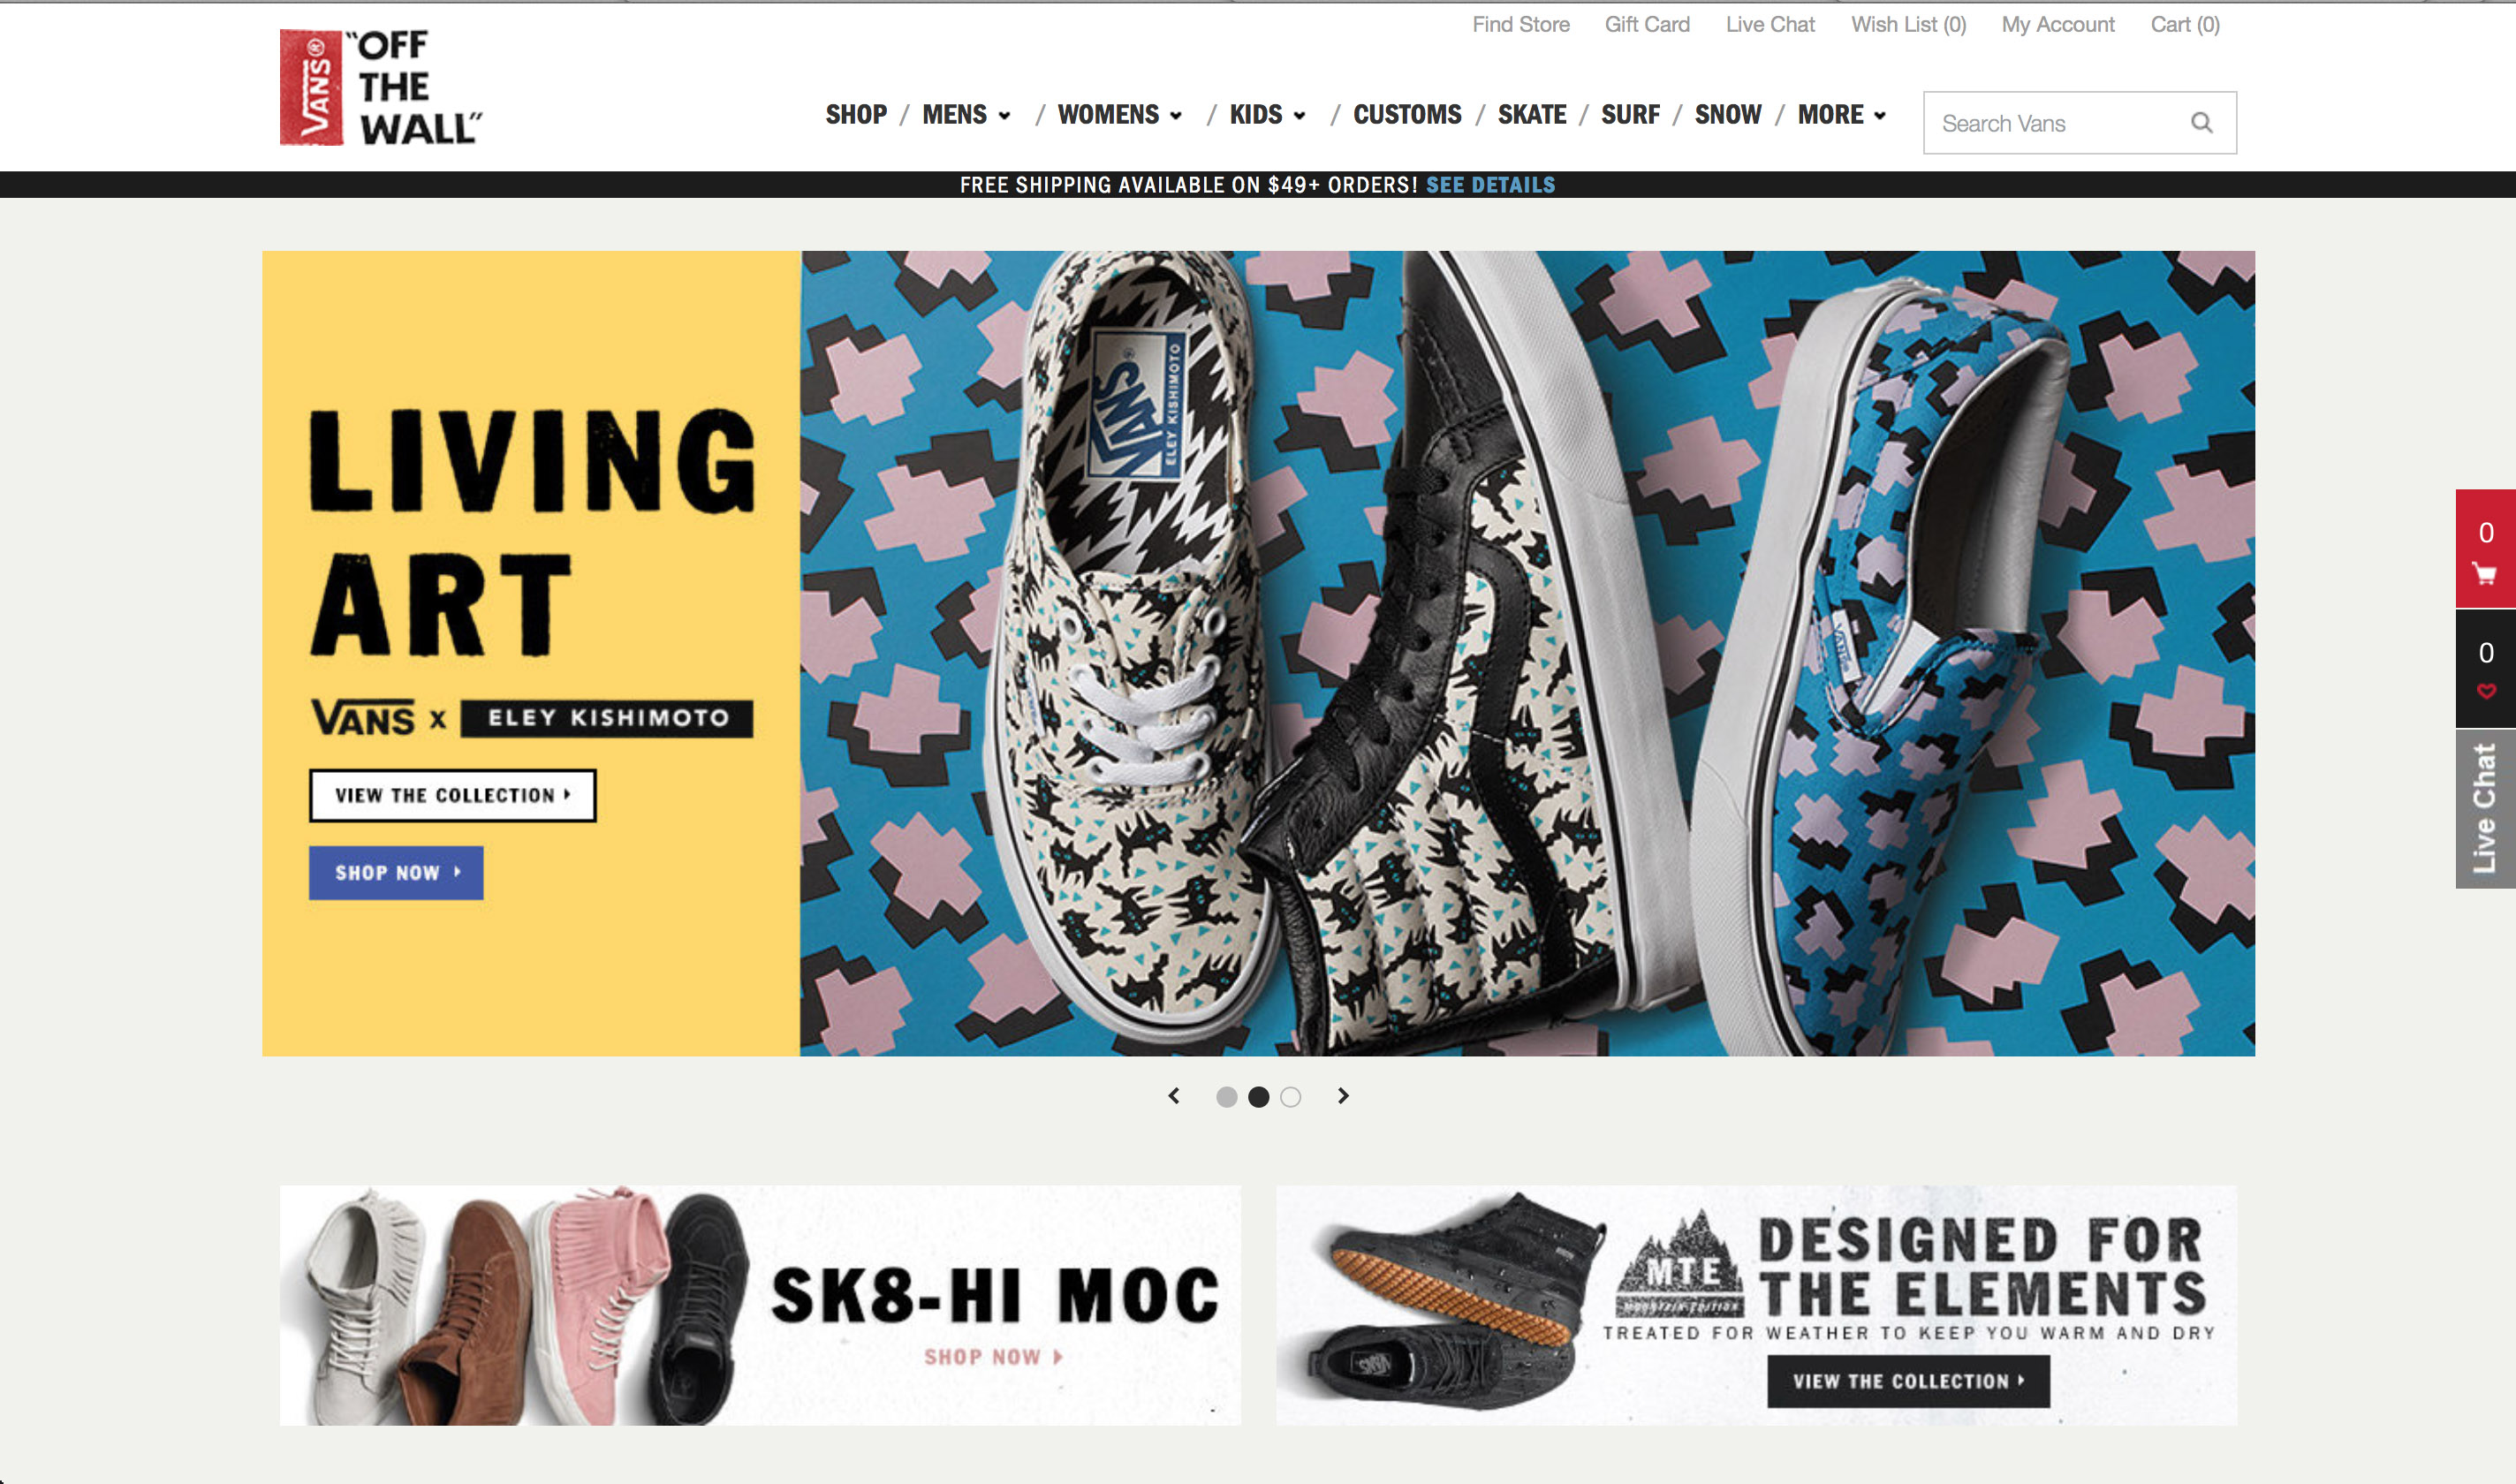 666d60ec9e Vans website. Download High Resolution Image